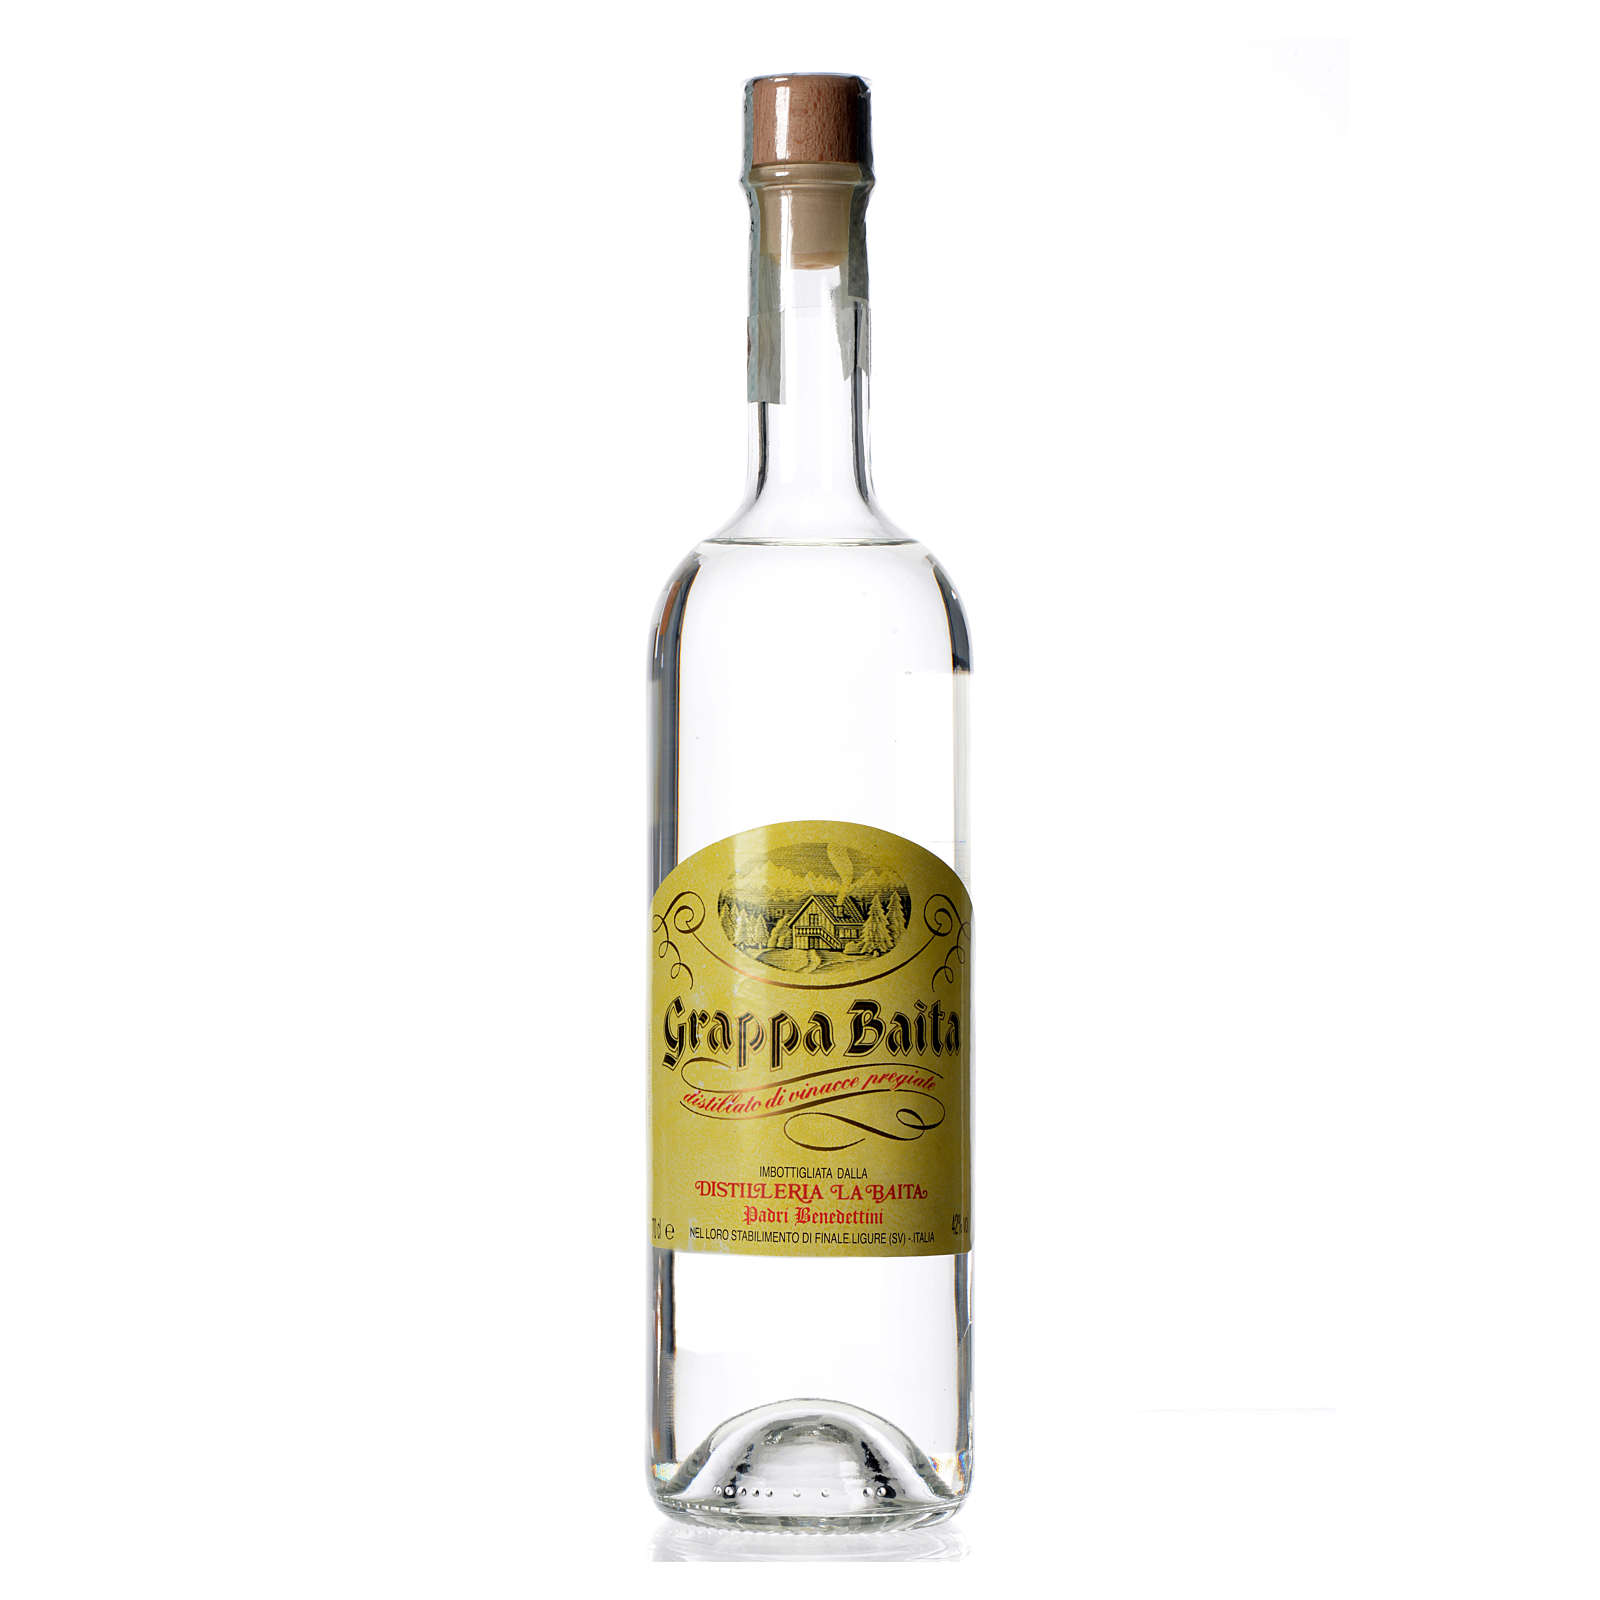 Grappa Baita 700 ml Finale Ligure 3